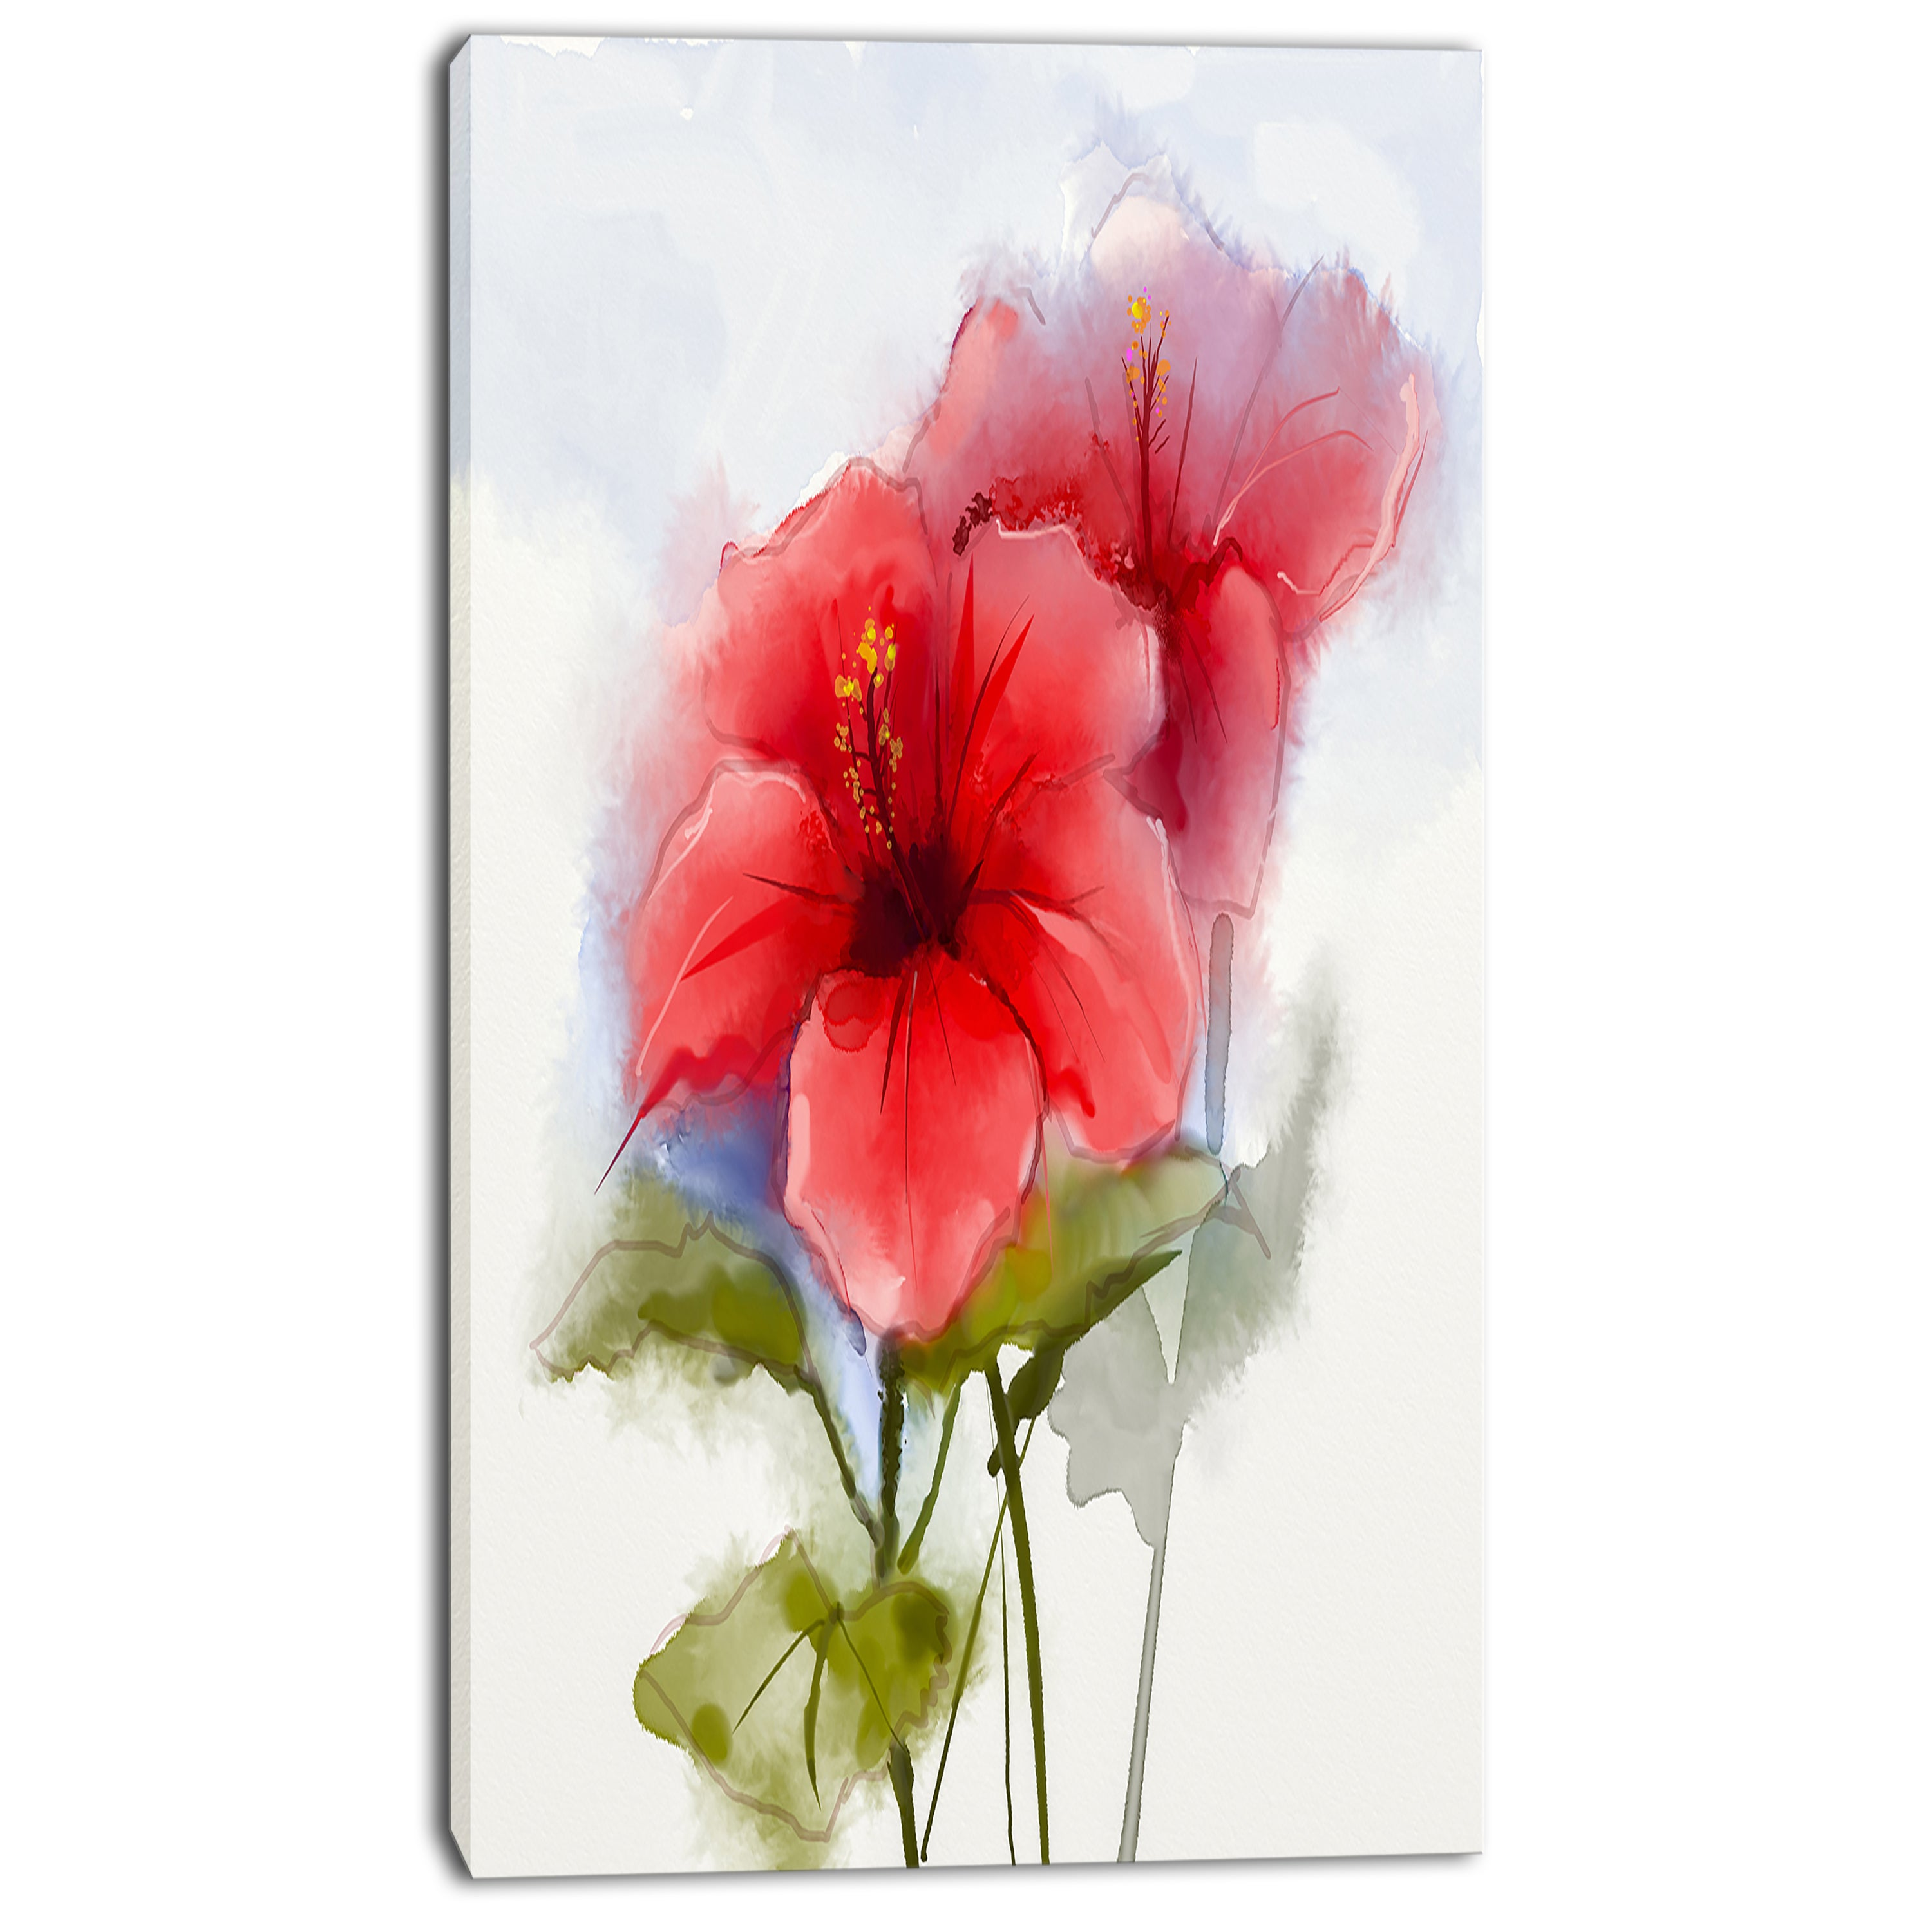 Shop designart watercolor painting red hibiscus flower modern shop designart watercolor painting red hibiscus flower modern floral wall art canvas free shipping on orders over 45 overstock 13177351 izmirmasajfo